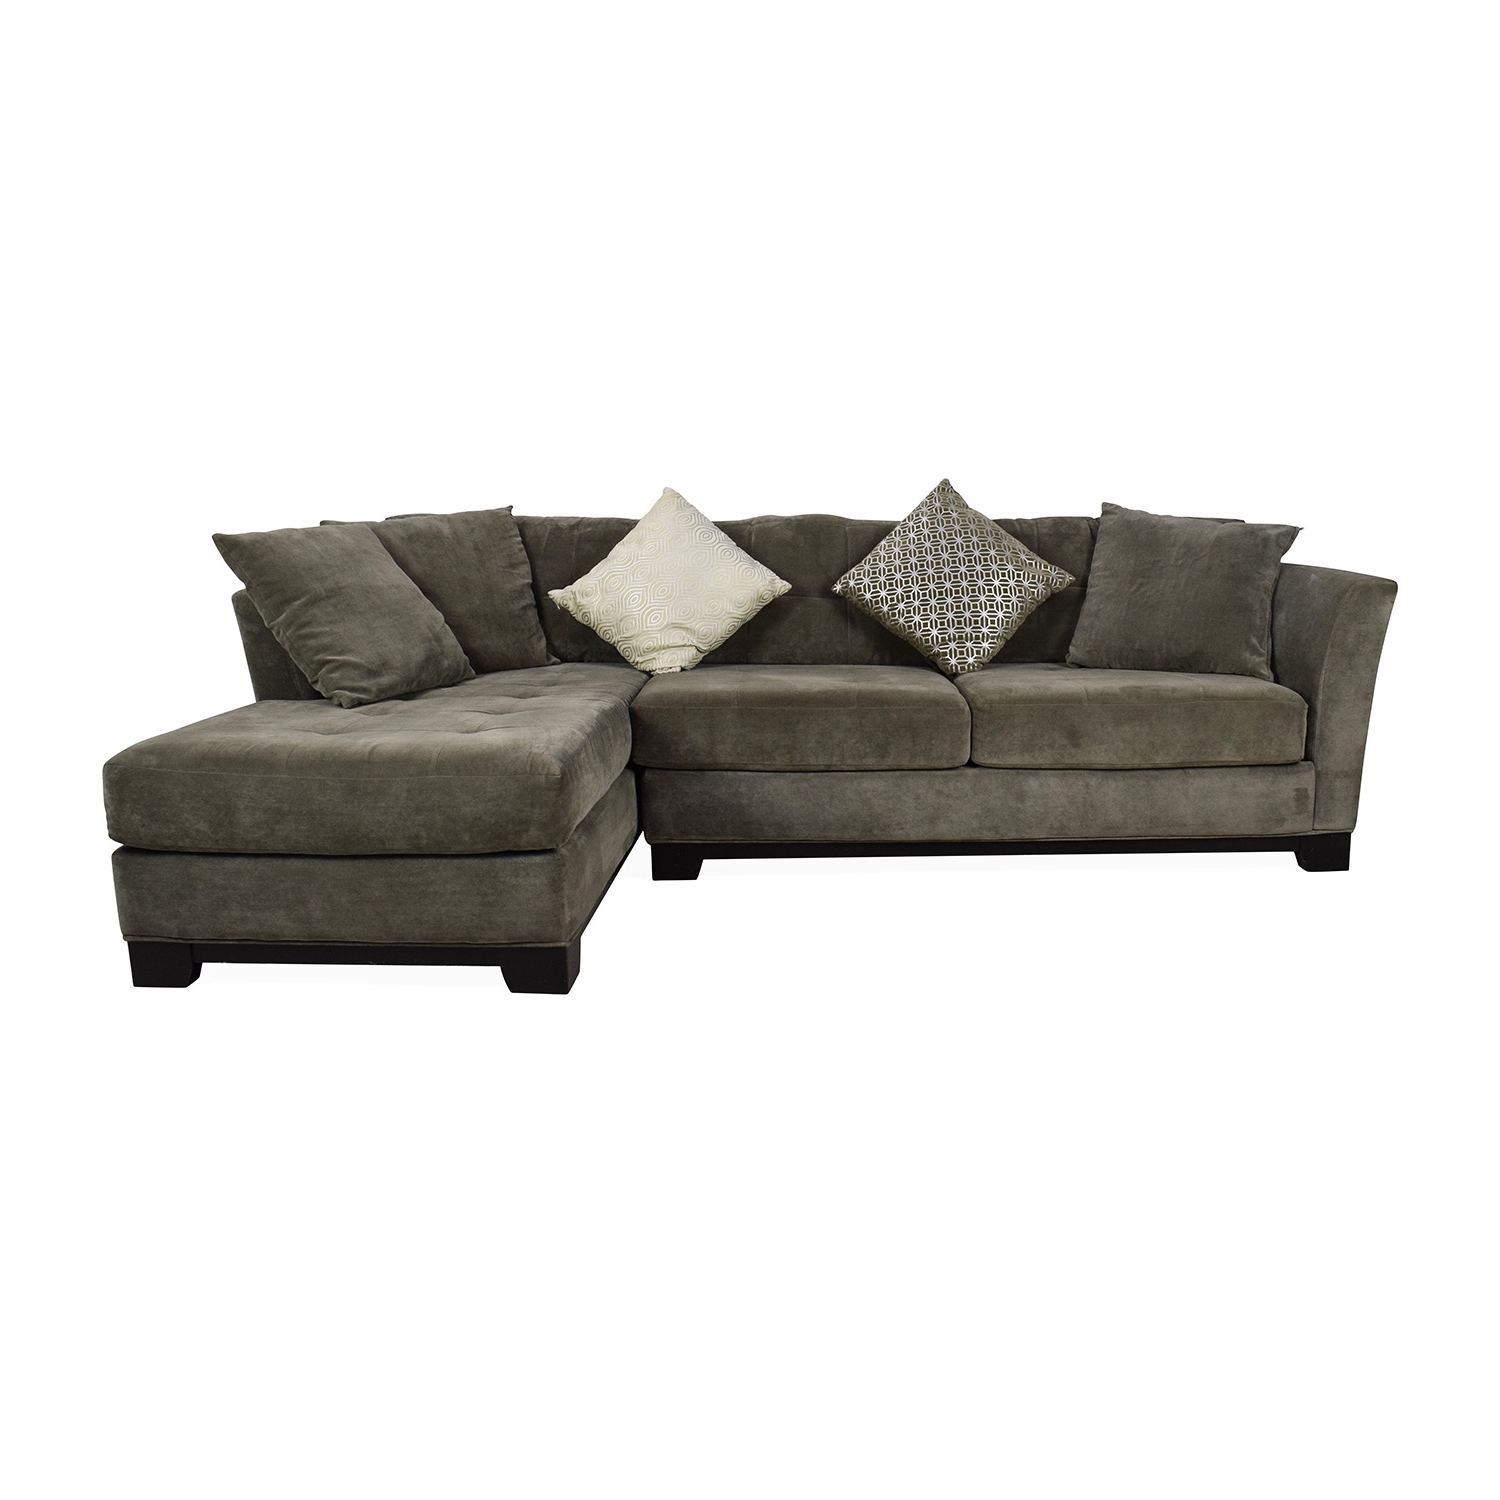 [%50% Off – Macy's Macy's Gray Sectional Couch With Chaise / Sofas Pertaining To Recent Gray Sectional Sofas With Chaise|gray Sectional Sofas With Chaise For Current 50% Off – Macy's Macy's Gray Sectional Couch With Chaise / Sofas|most Recent Gray Sectional Sofas With Chaise Regarding 50% Off – Macy's Macy's Gray Sectional Couch With Chaise / Sofas|well Liked 50% Off – Macy's Macy's Gray Sectional Couch With Chaise / Sofas Throughout Gray Sectional Sofas With Chaise%] (View 14 of 15)